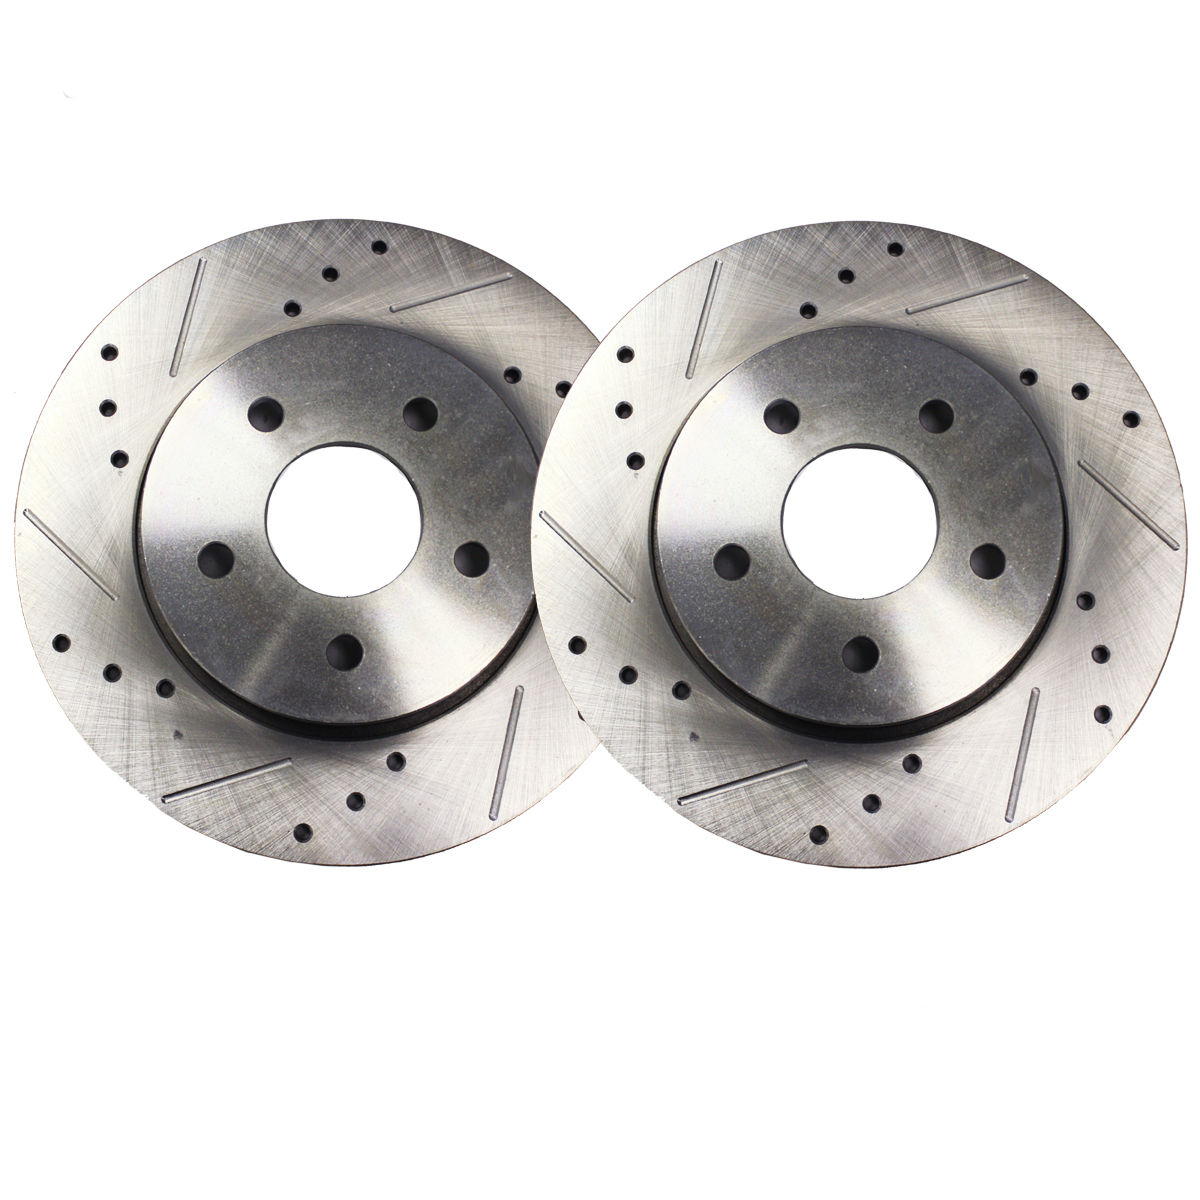 Front Drilled and Slotted Brake Rotors Performance Grade #S-31257